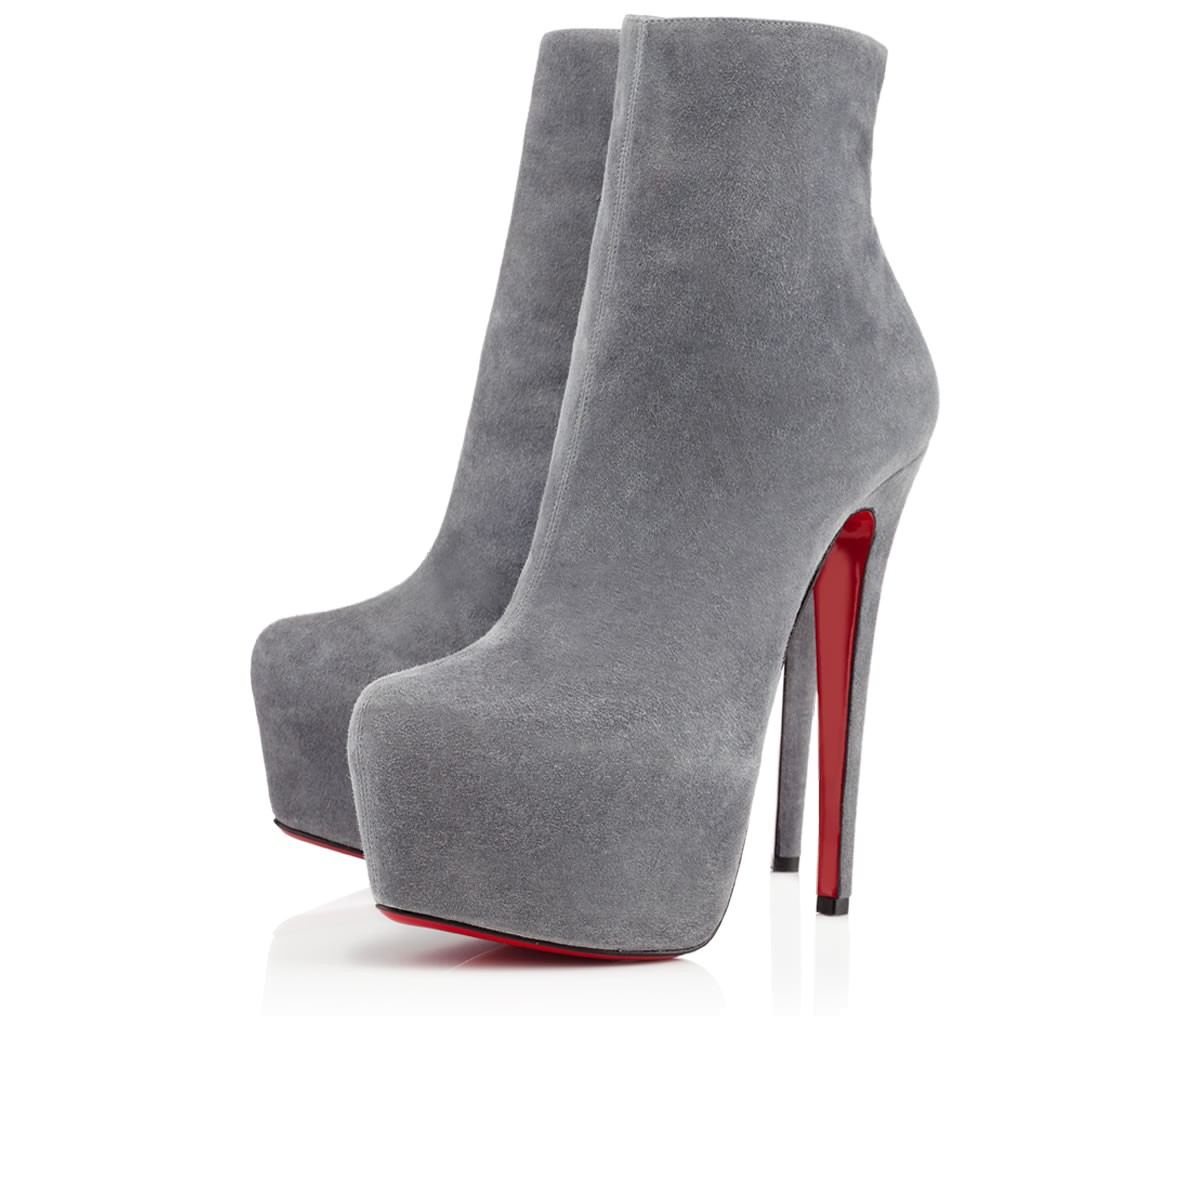 christian louboutin pointed-toe ankle boots